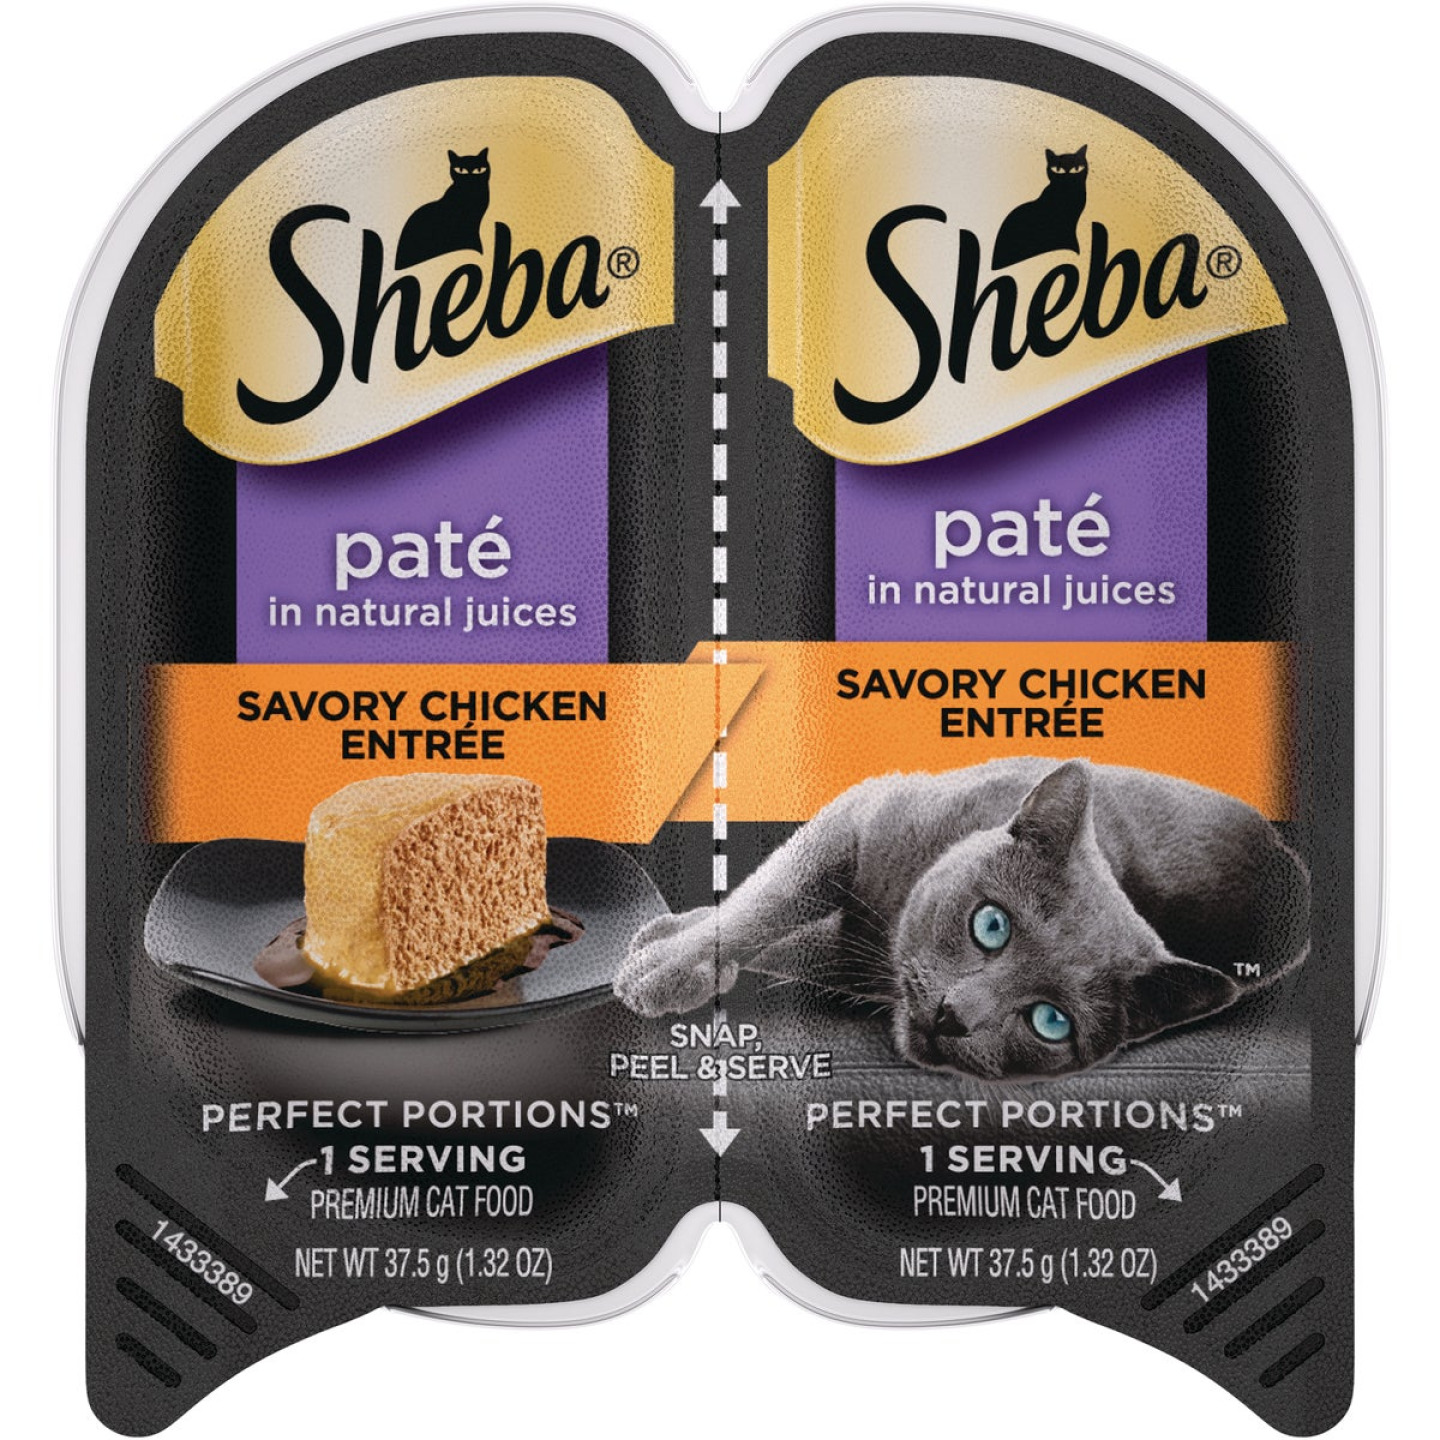 Sheba Perfect Portions Pate 2.6 Oz. Adult Savory Chicken Wet Cat Food Image 1